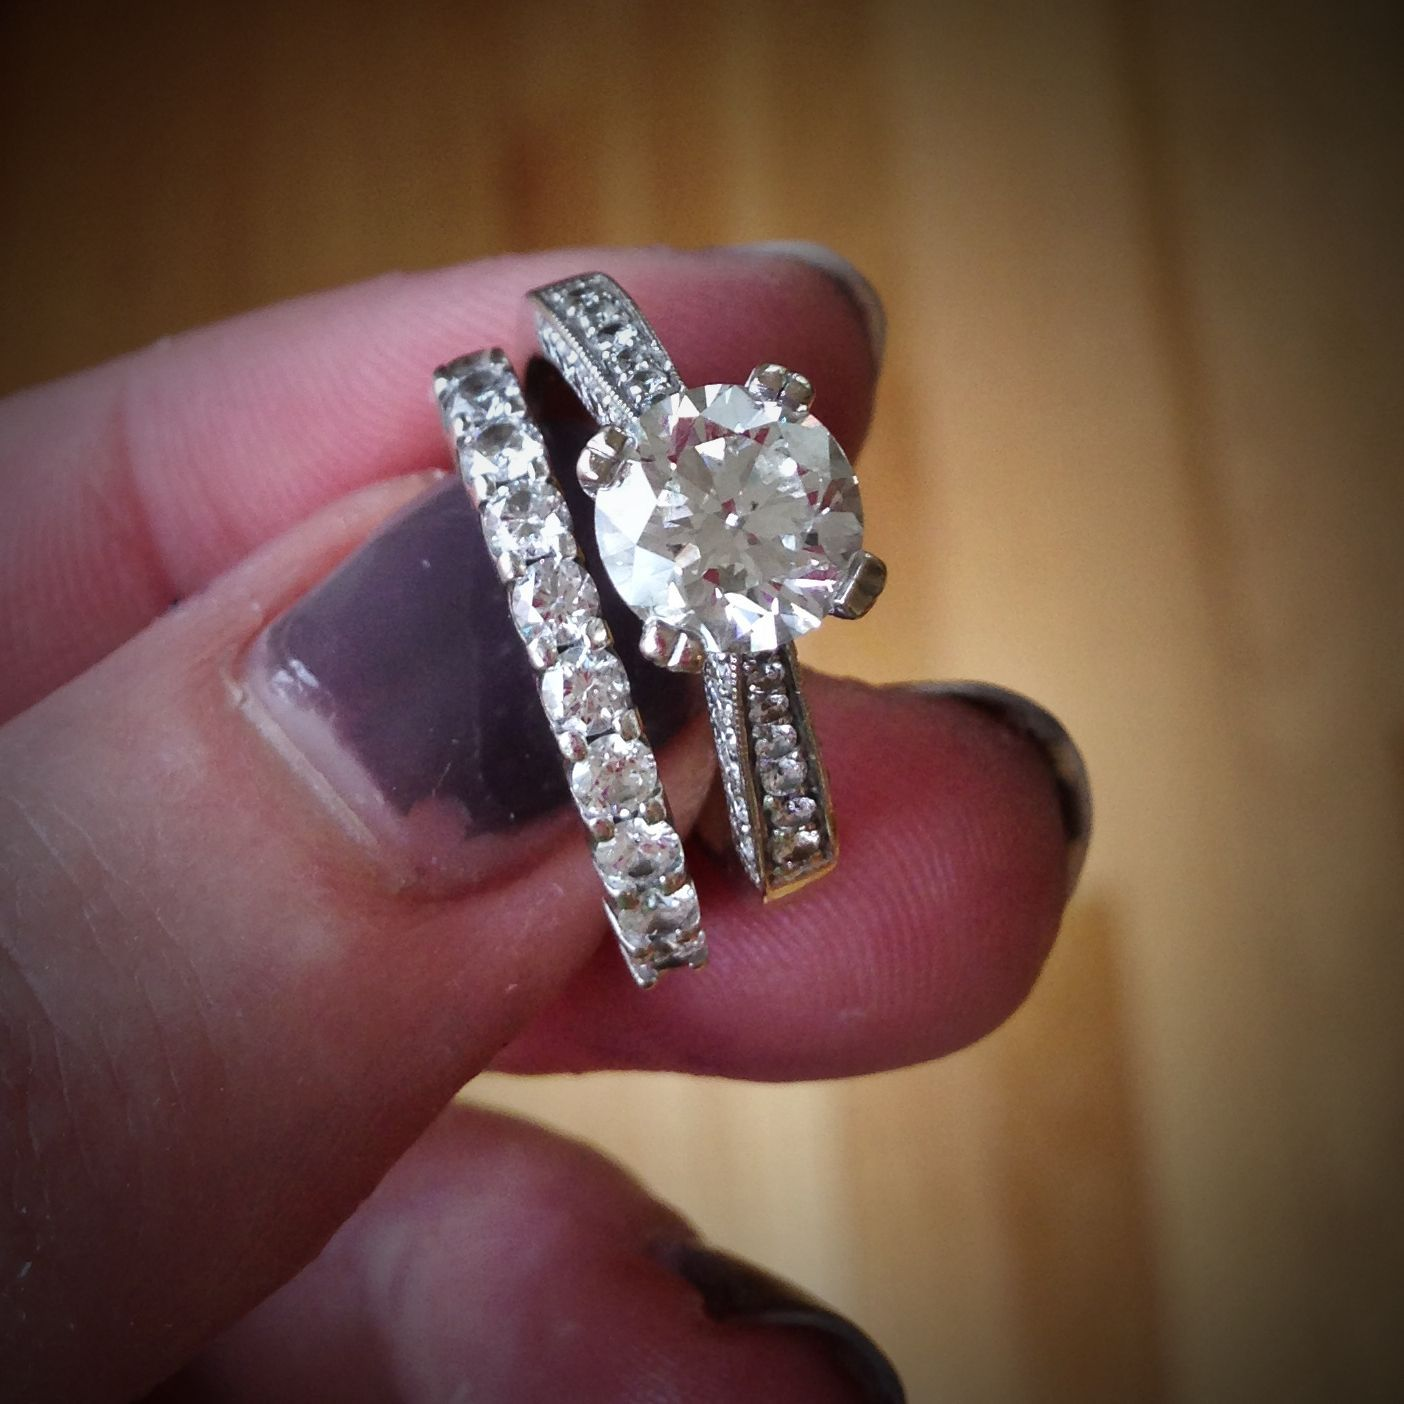 How to get rid of a rash under your wedding rings Clean